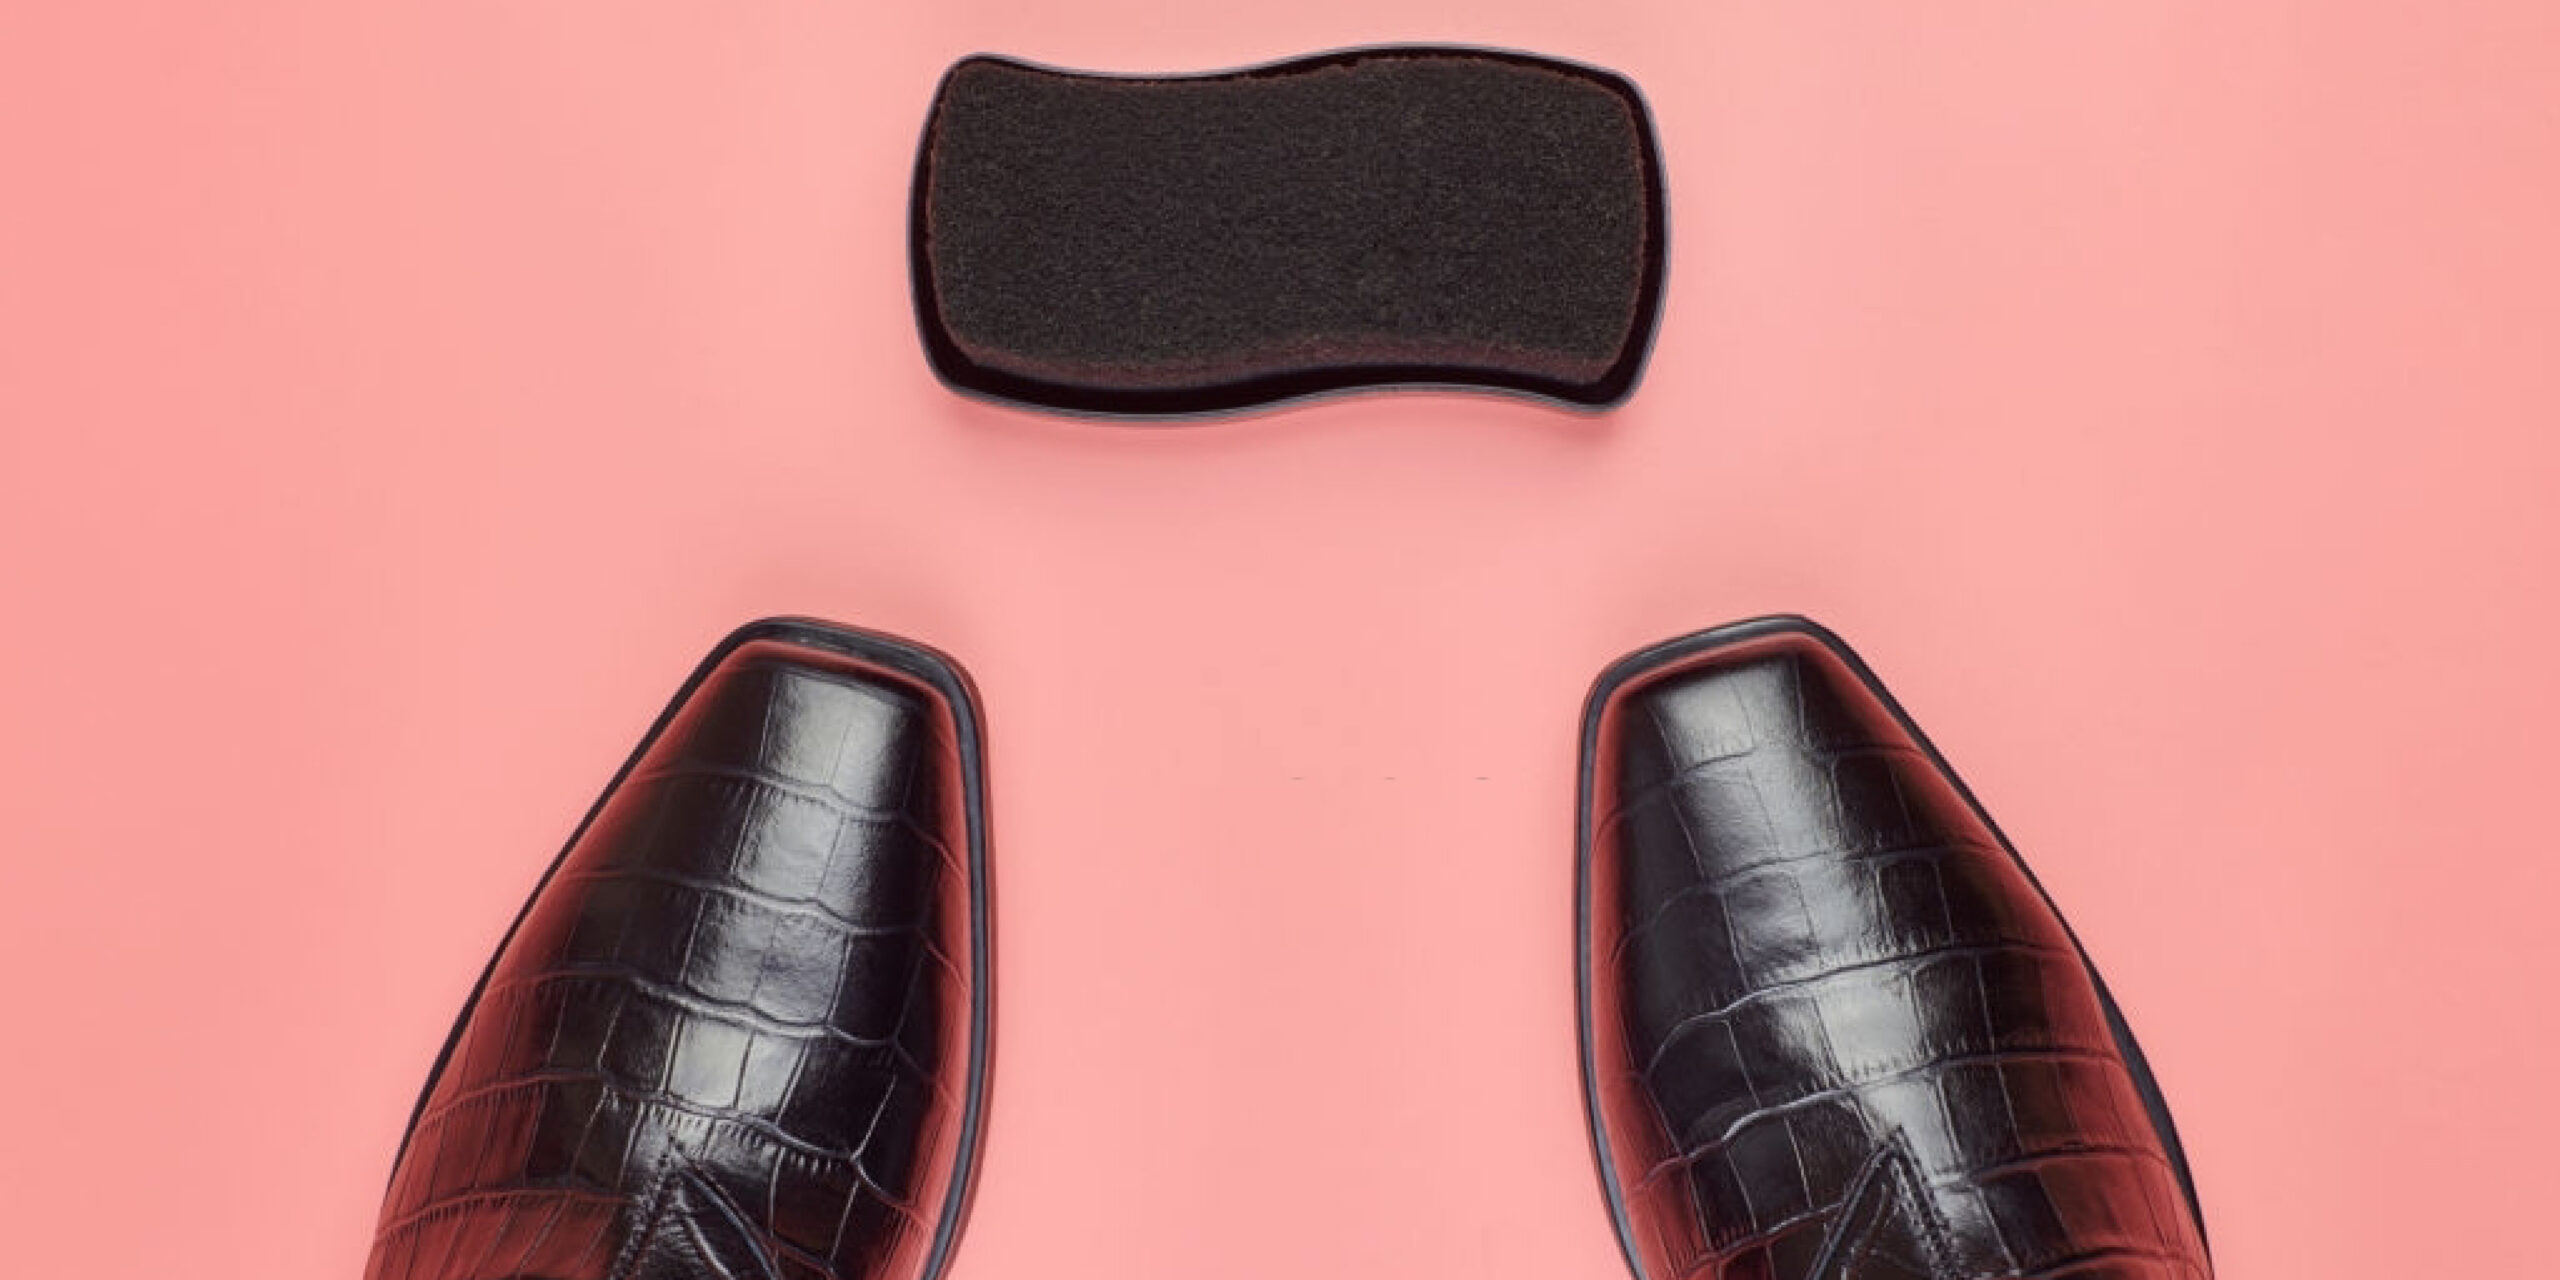 Hacks to Get Creases Out of Leather Shoes